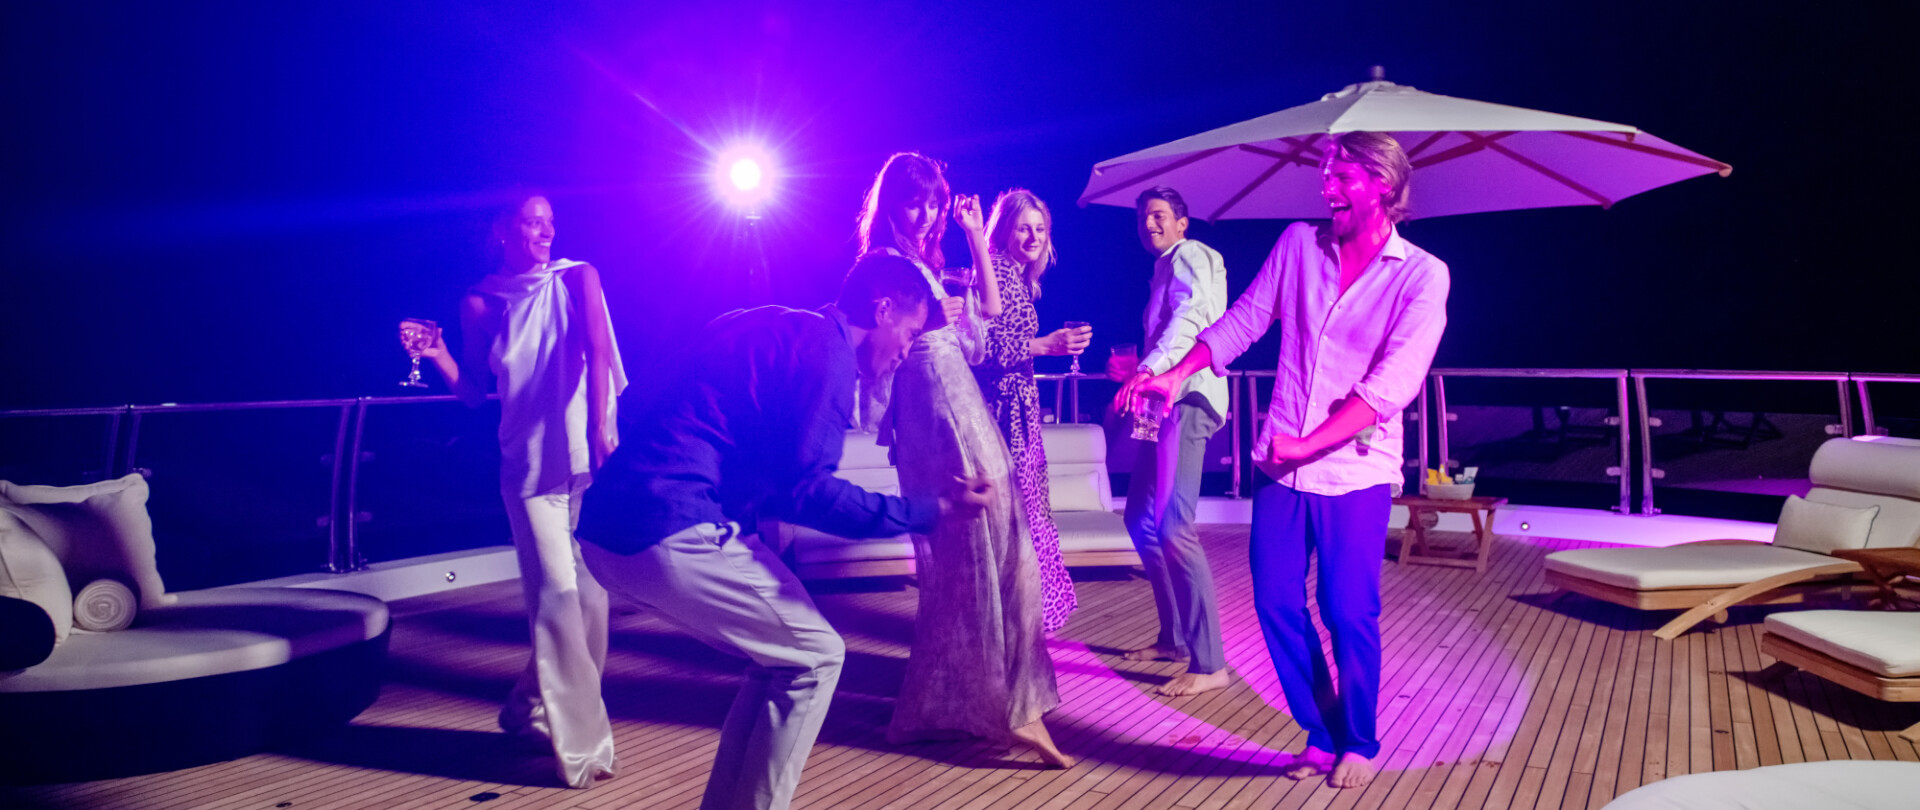 Renting a Yacht for a Party - Your Dream Party Guide photo 1